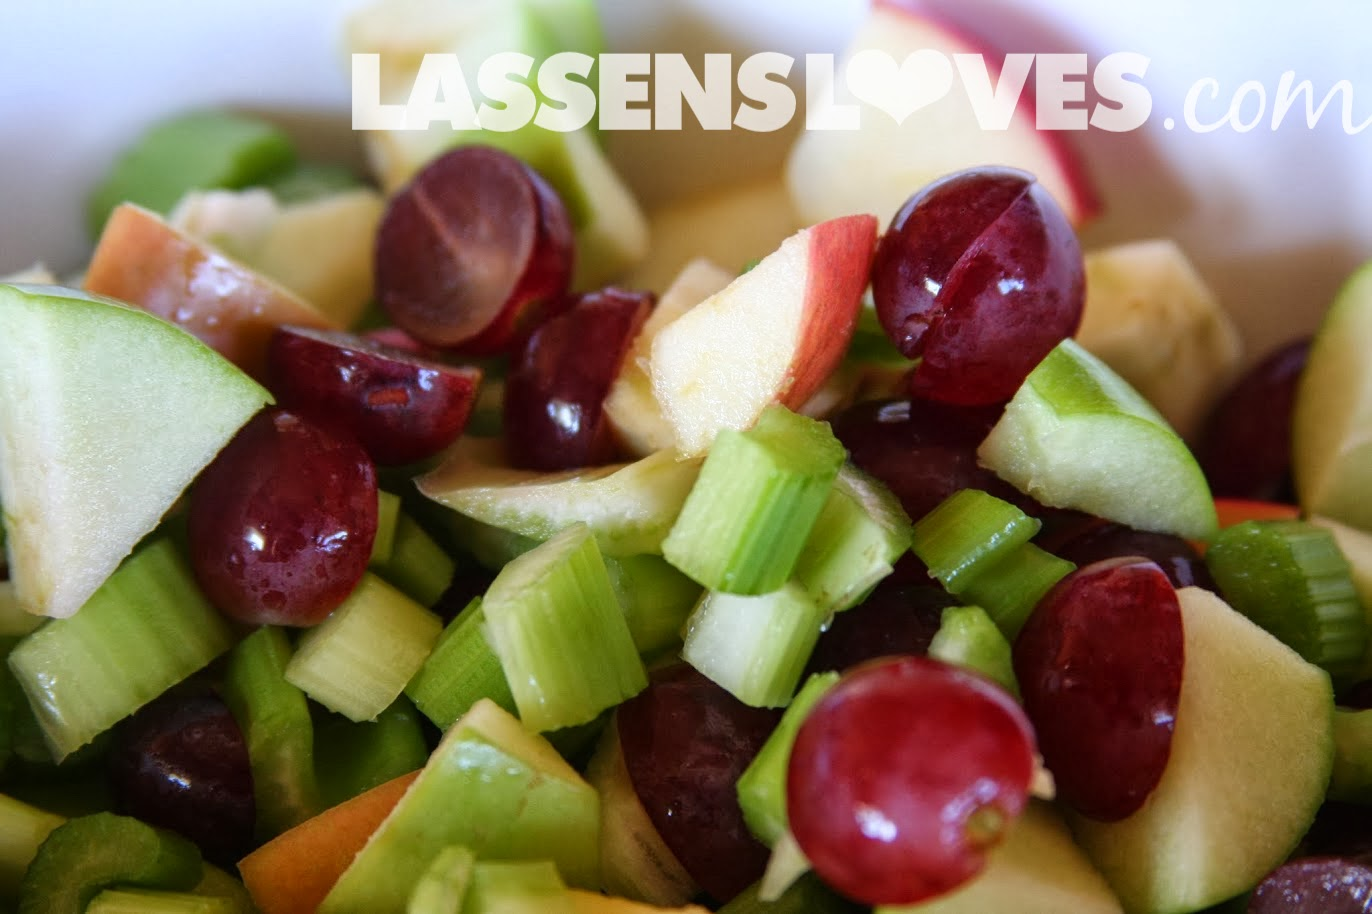 lassensloves.com, Lassen's, Lassens, waldorf salad, grapes, apples, salad